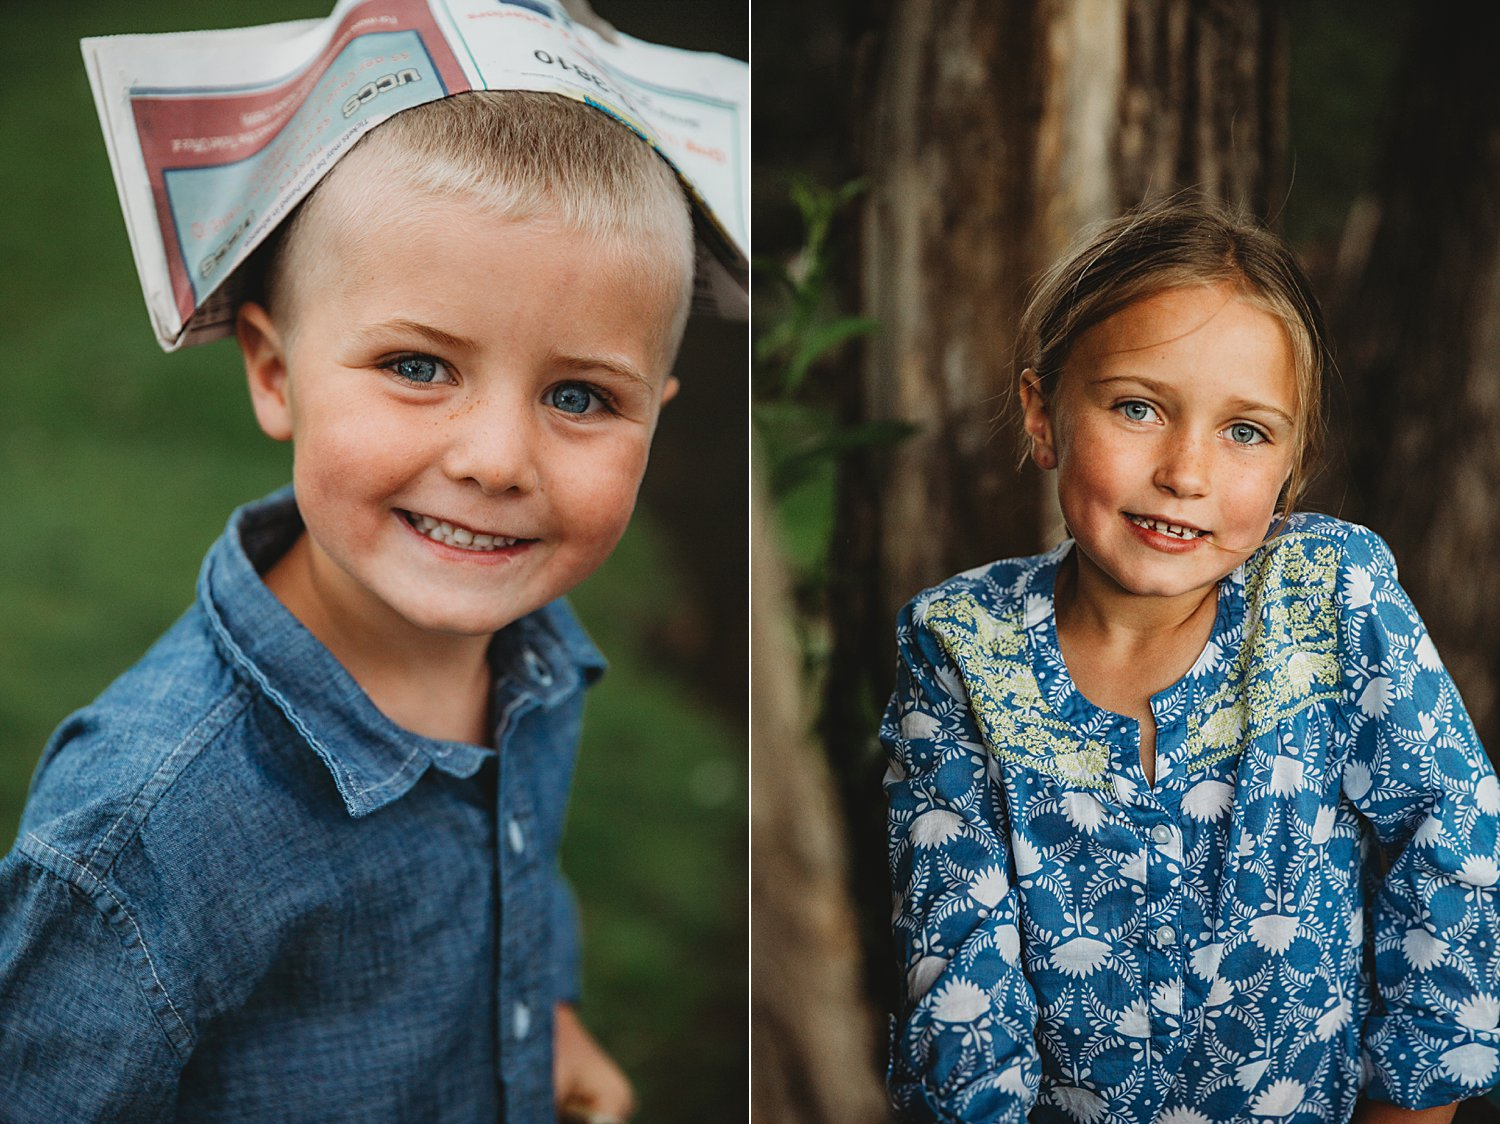 Portraits of a boy and a girl outside